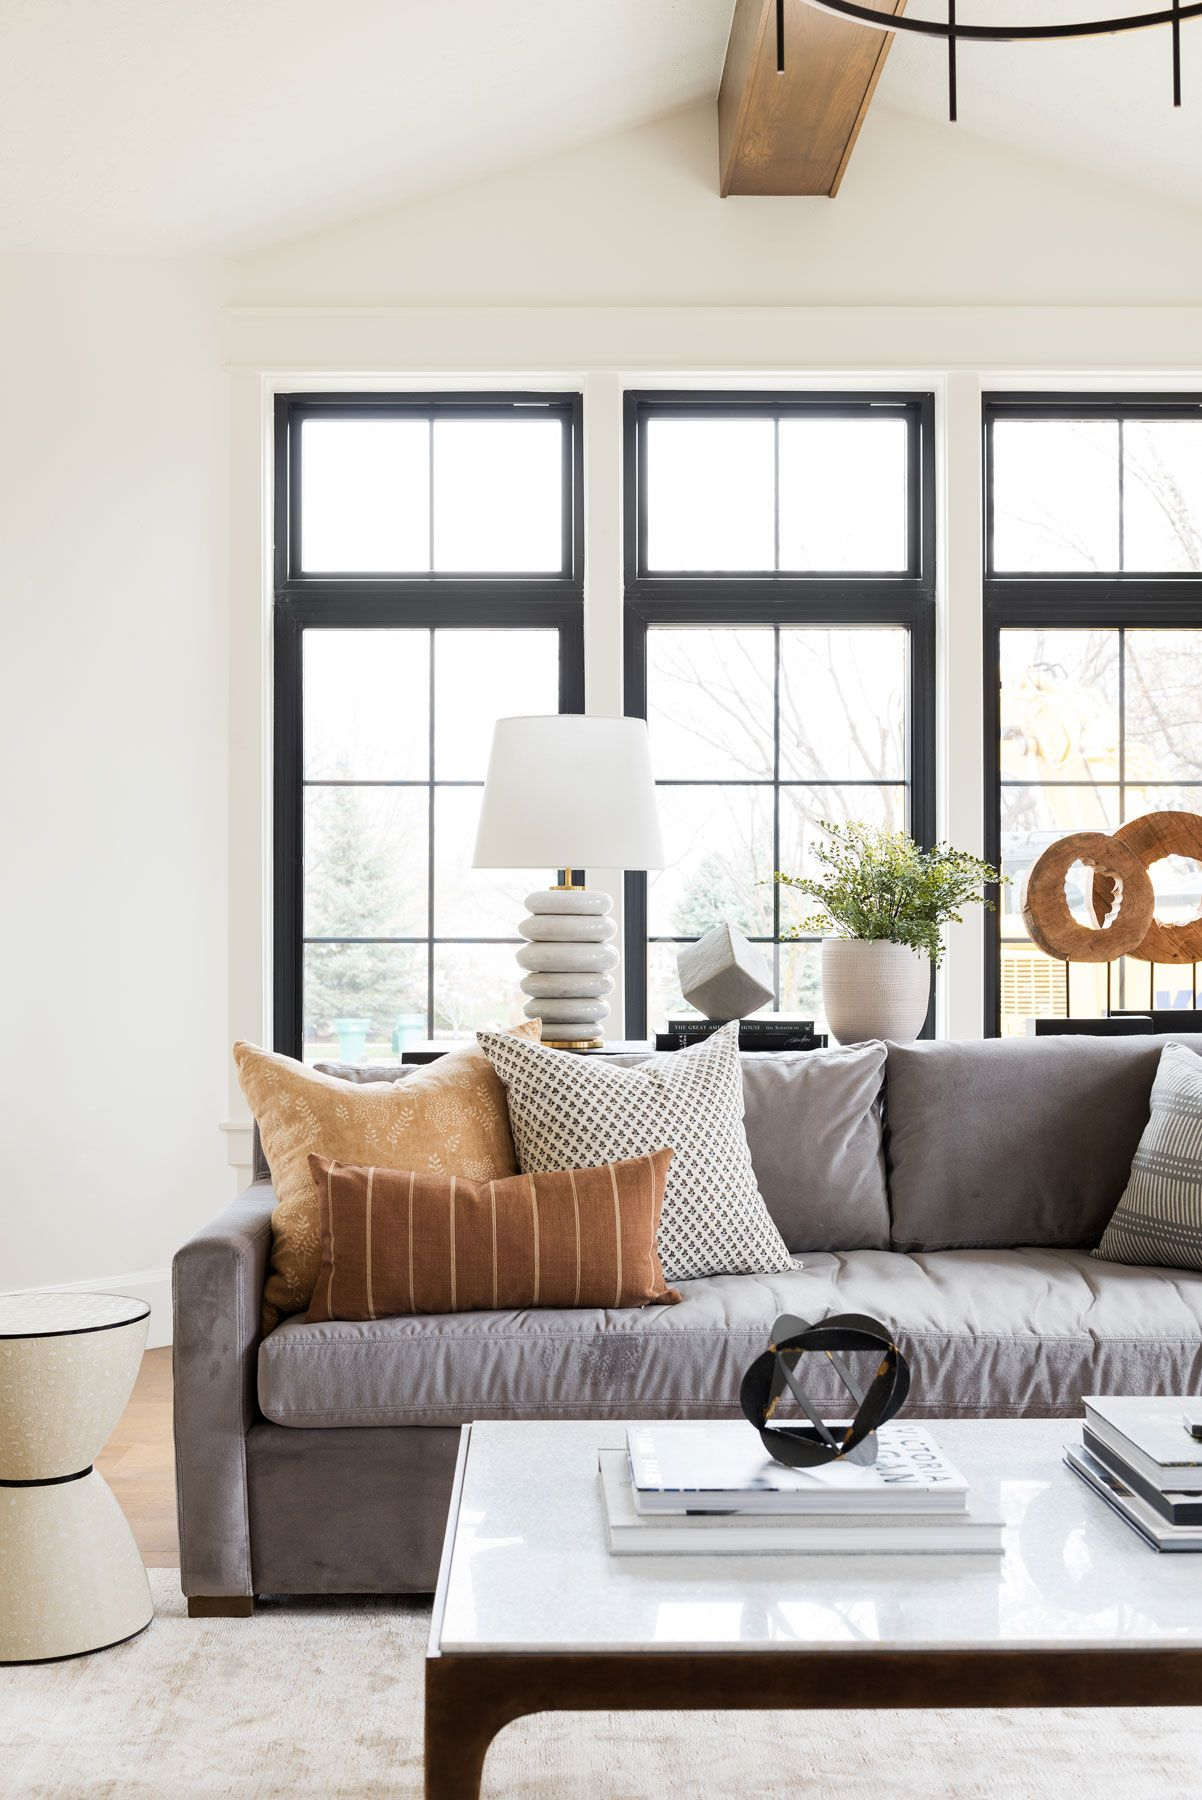 Northridge Remodel: The Living Spaces   Casual living ... on Fireplace Casual Living id=15866